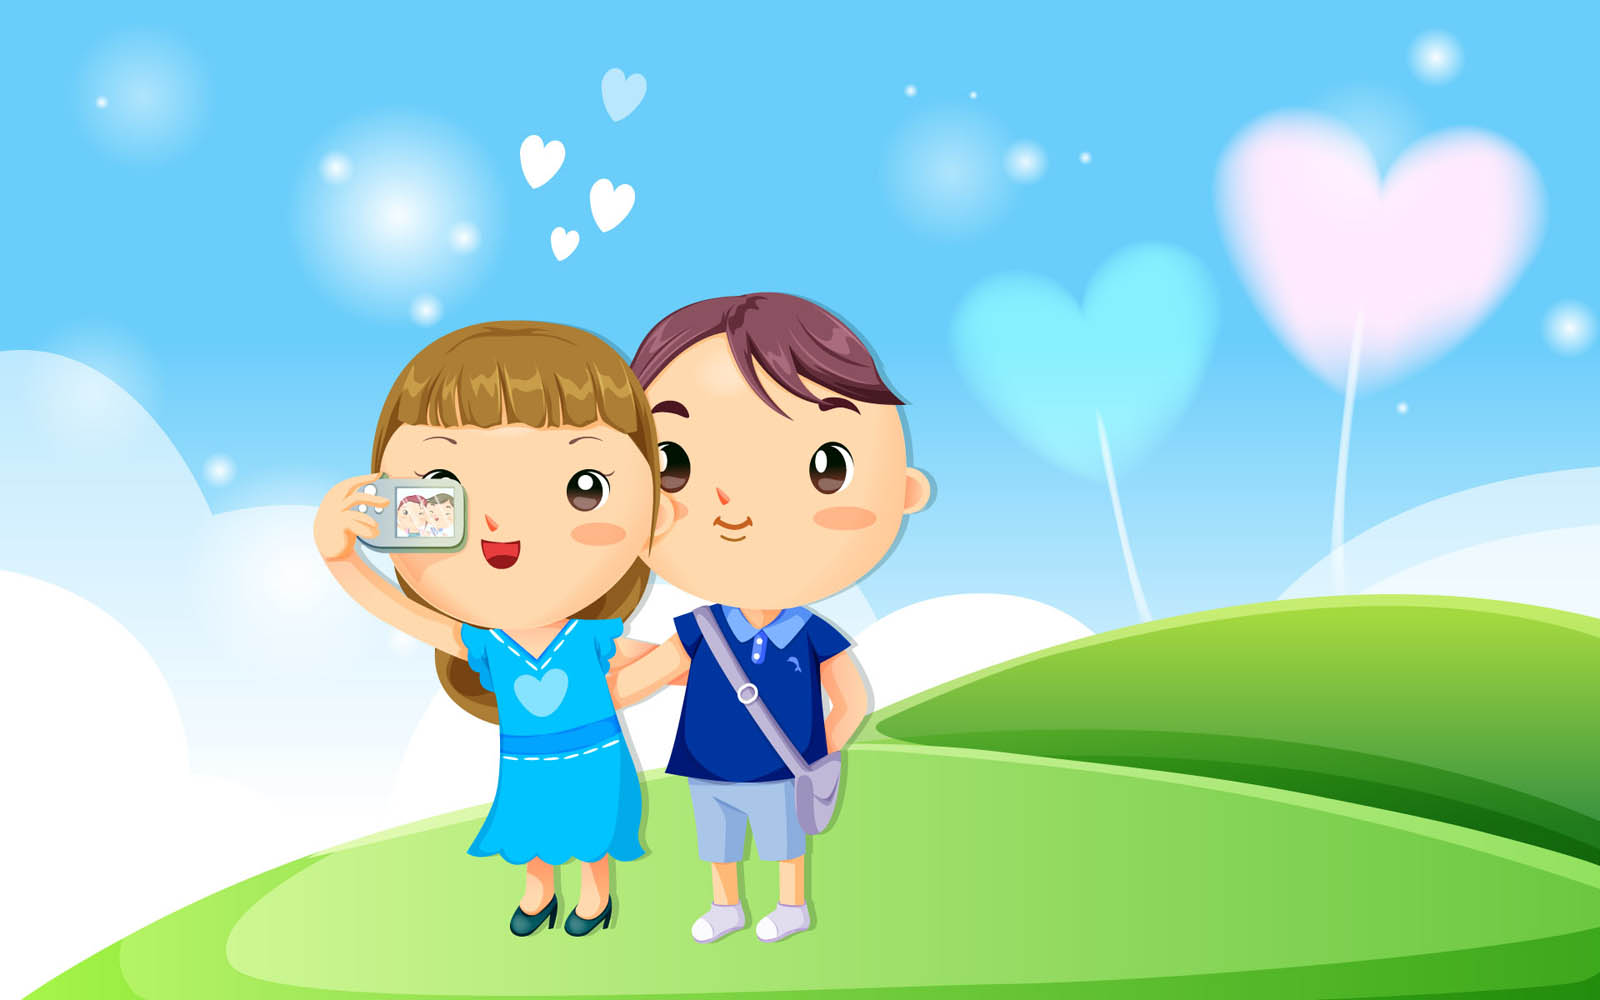 Wallpapers Cartoon Love Wallpapers